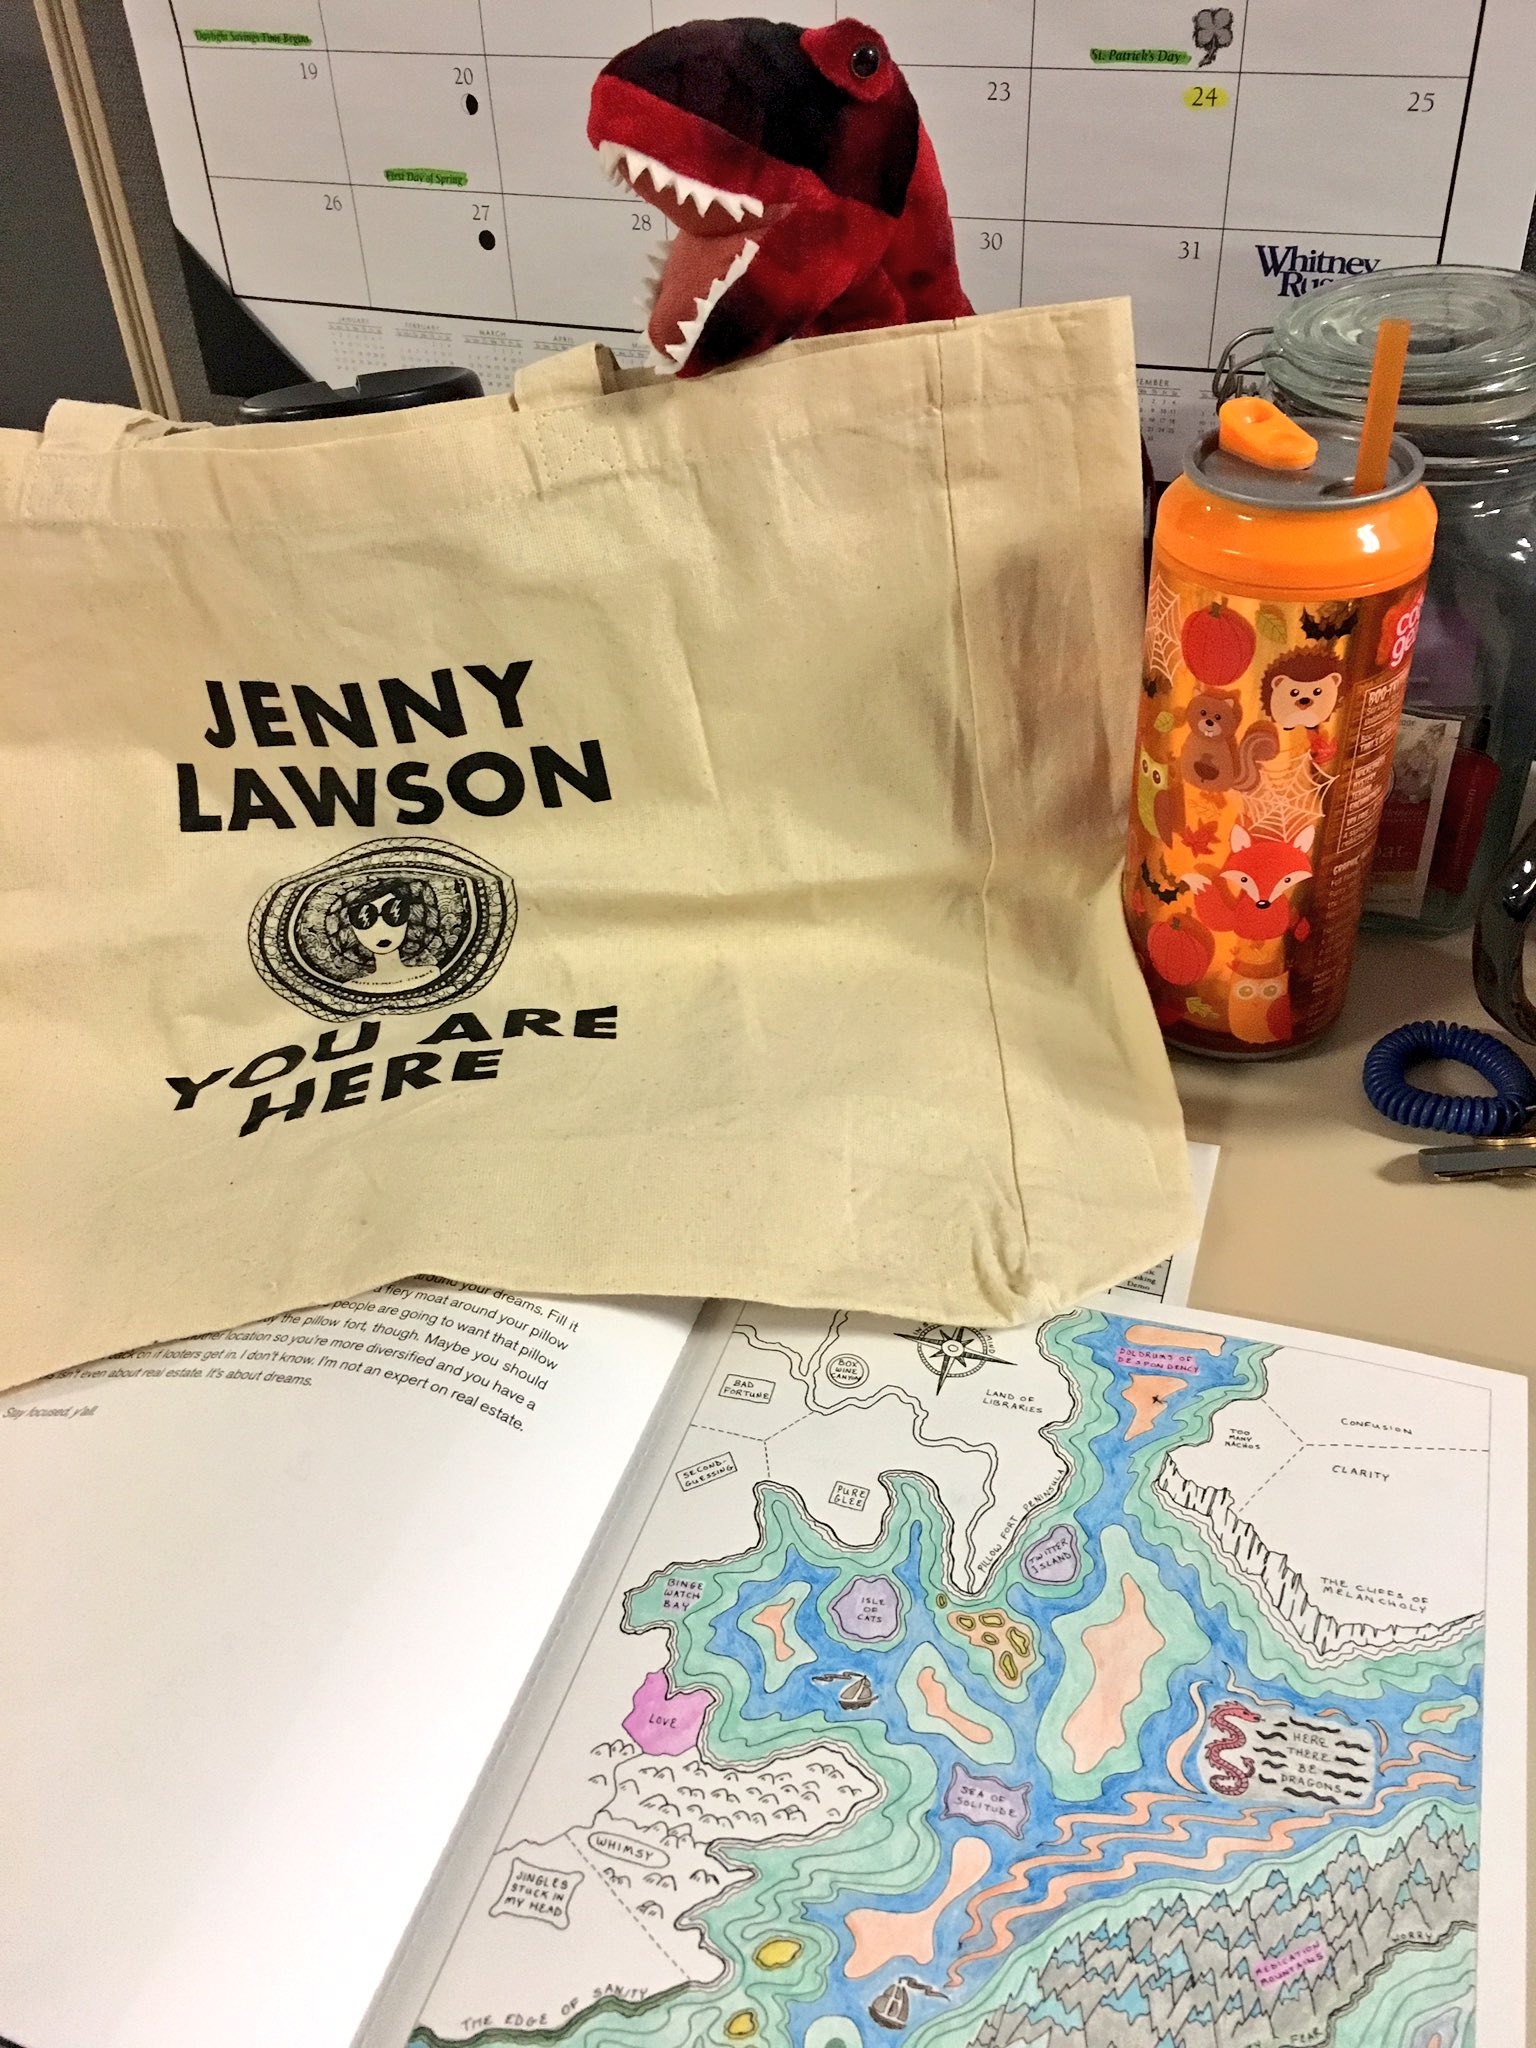 Super stoked that my #youarehere tote bag came in yesterday. Had to show it off at work ✌🏻@TheBloggess https://t.co/XlLEV8IRz1